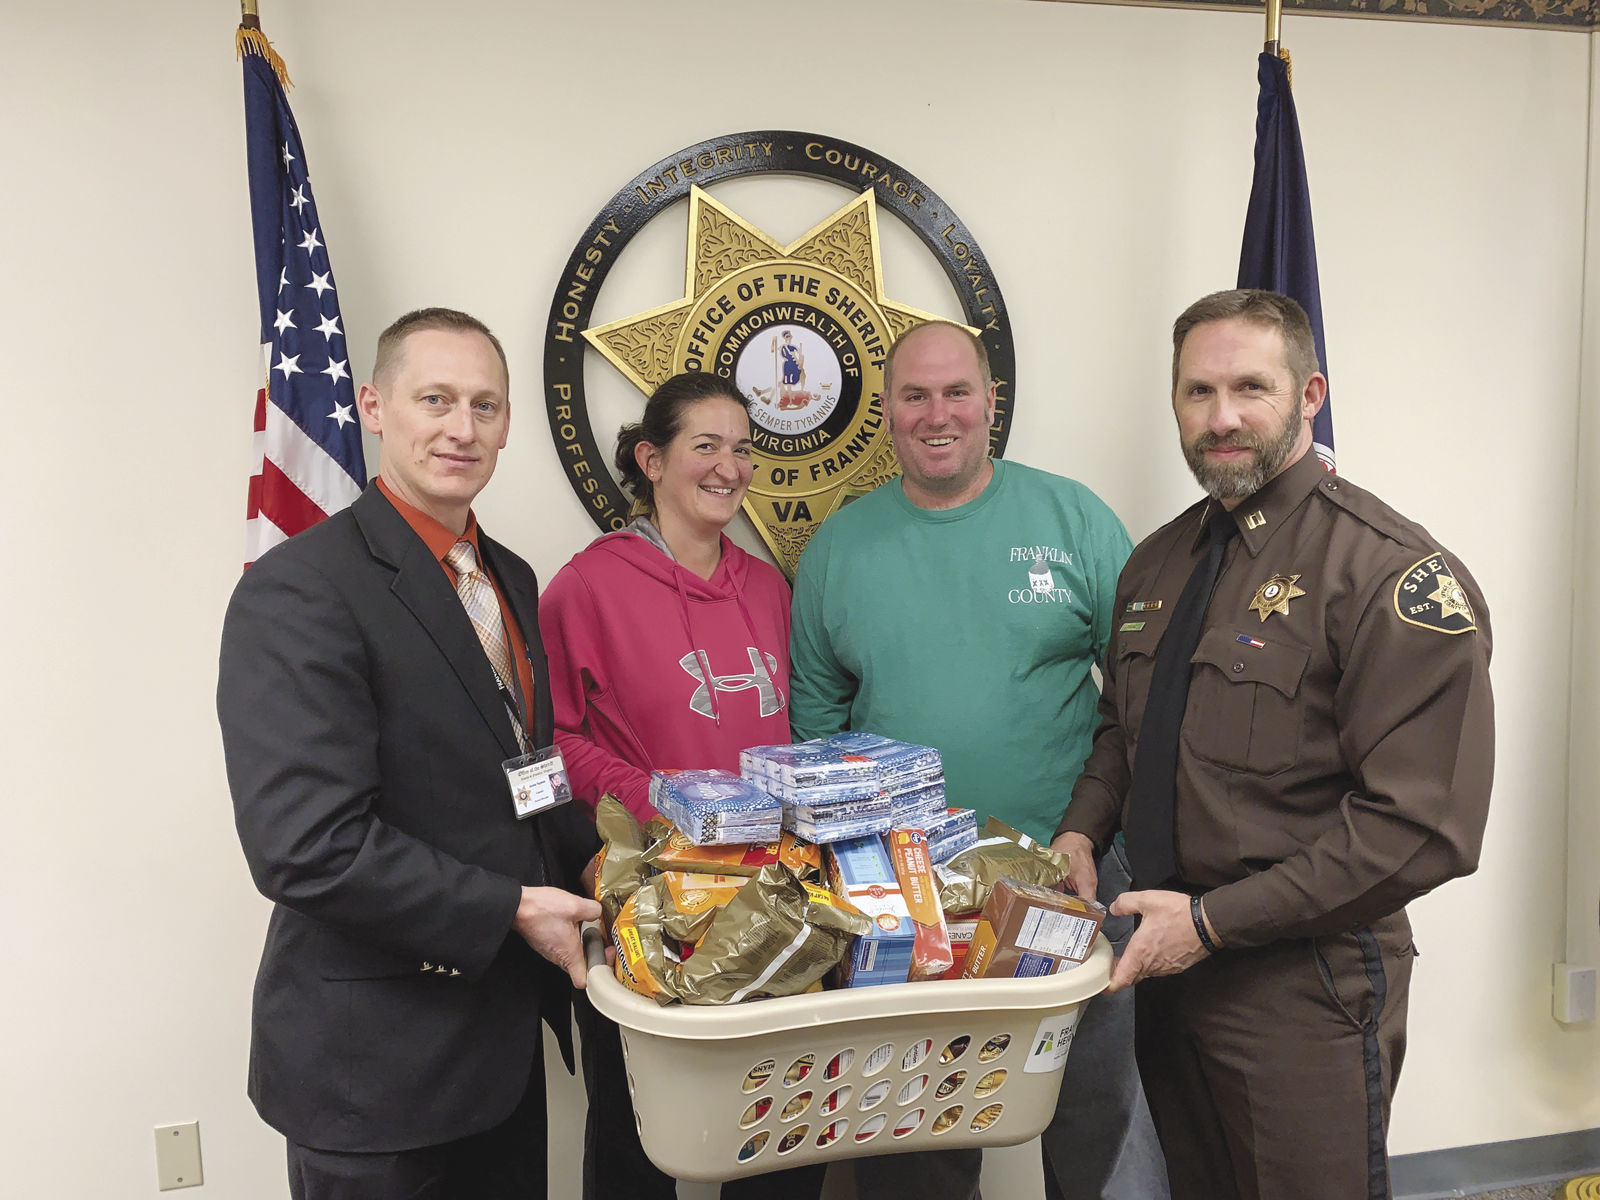 Sheriff's department issues gifts instead of tickets